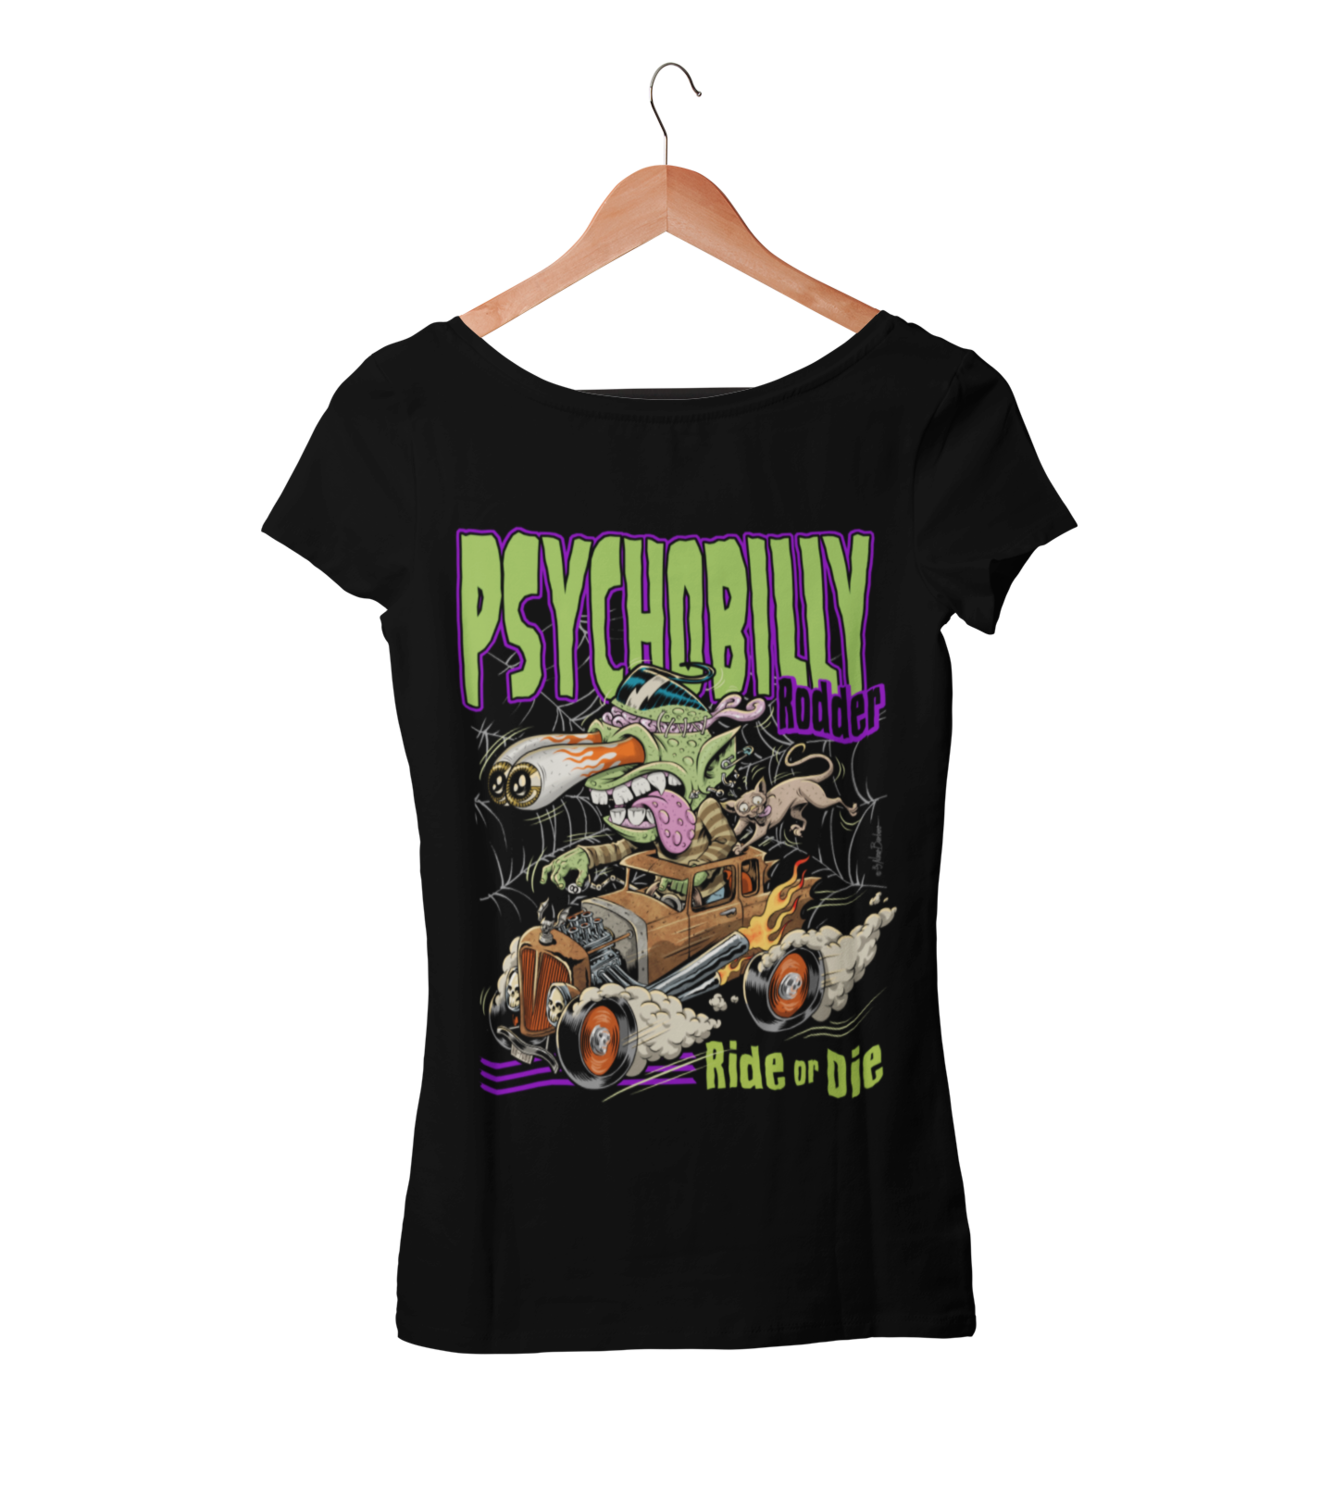 PSYCHO CLAWS T-SHIRT WOMAN by NANO BARBERO